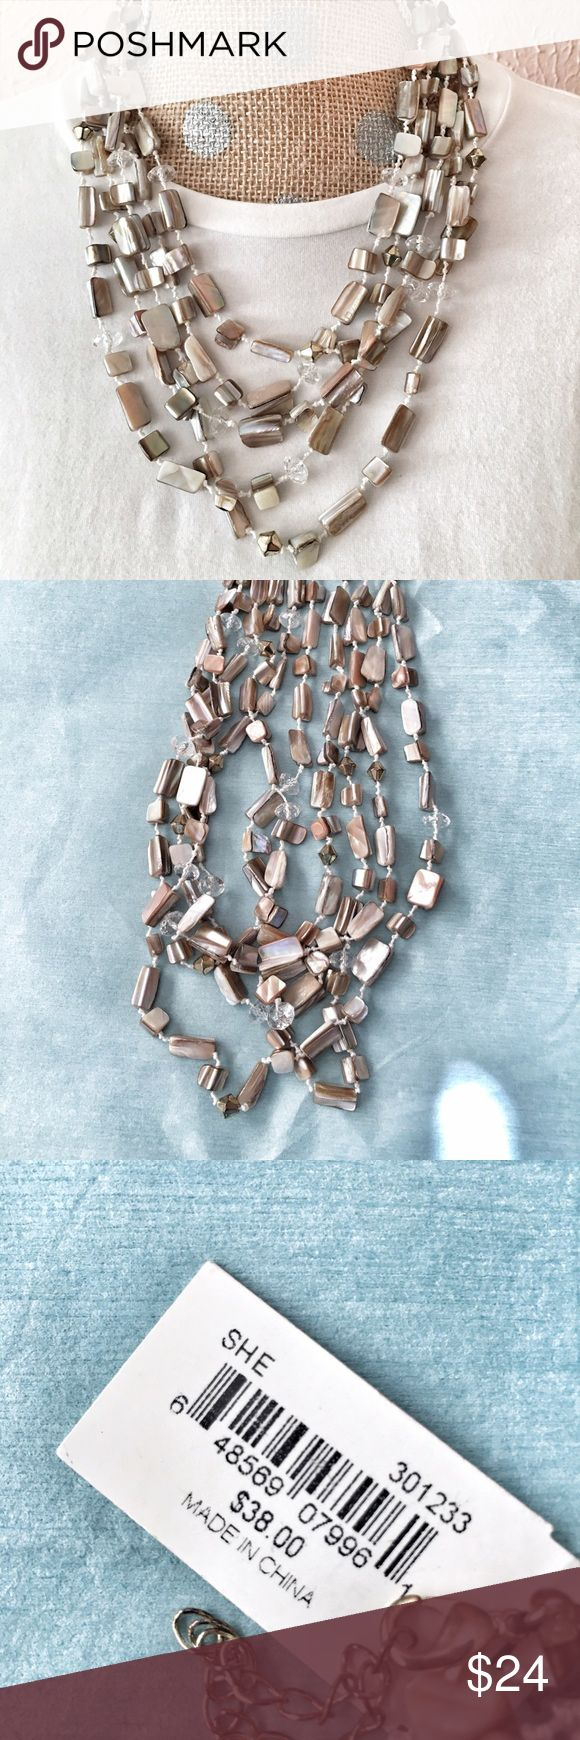 Multi-strand neutral necklace Like it now. Description coming. Erica Lyons Jewelry Necklaces